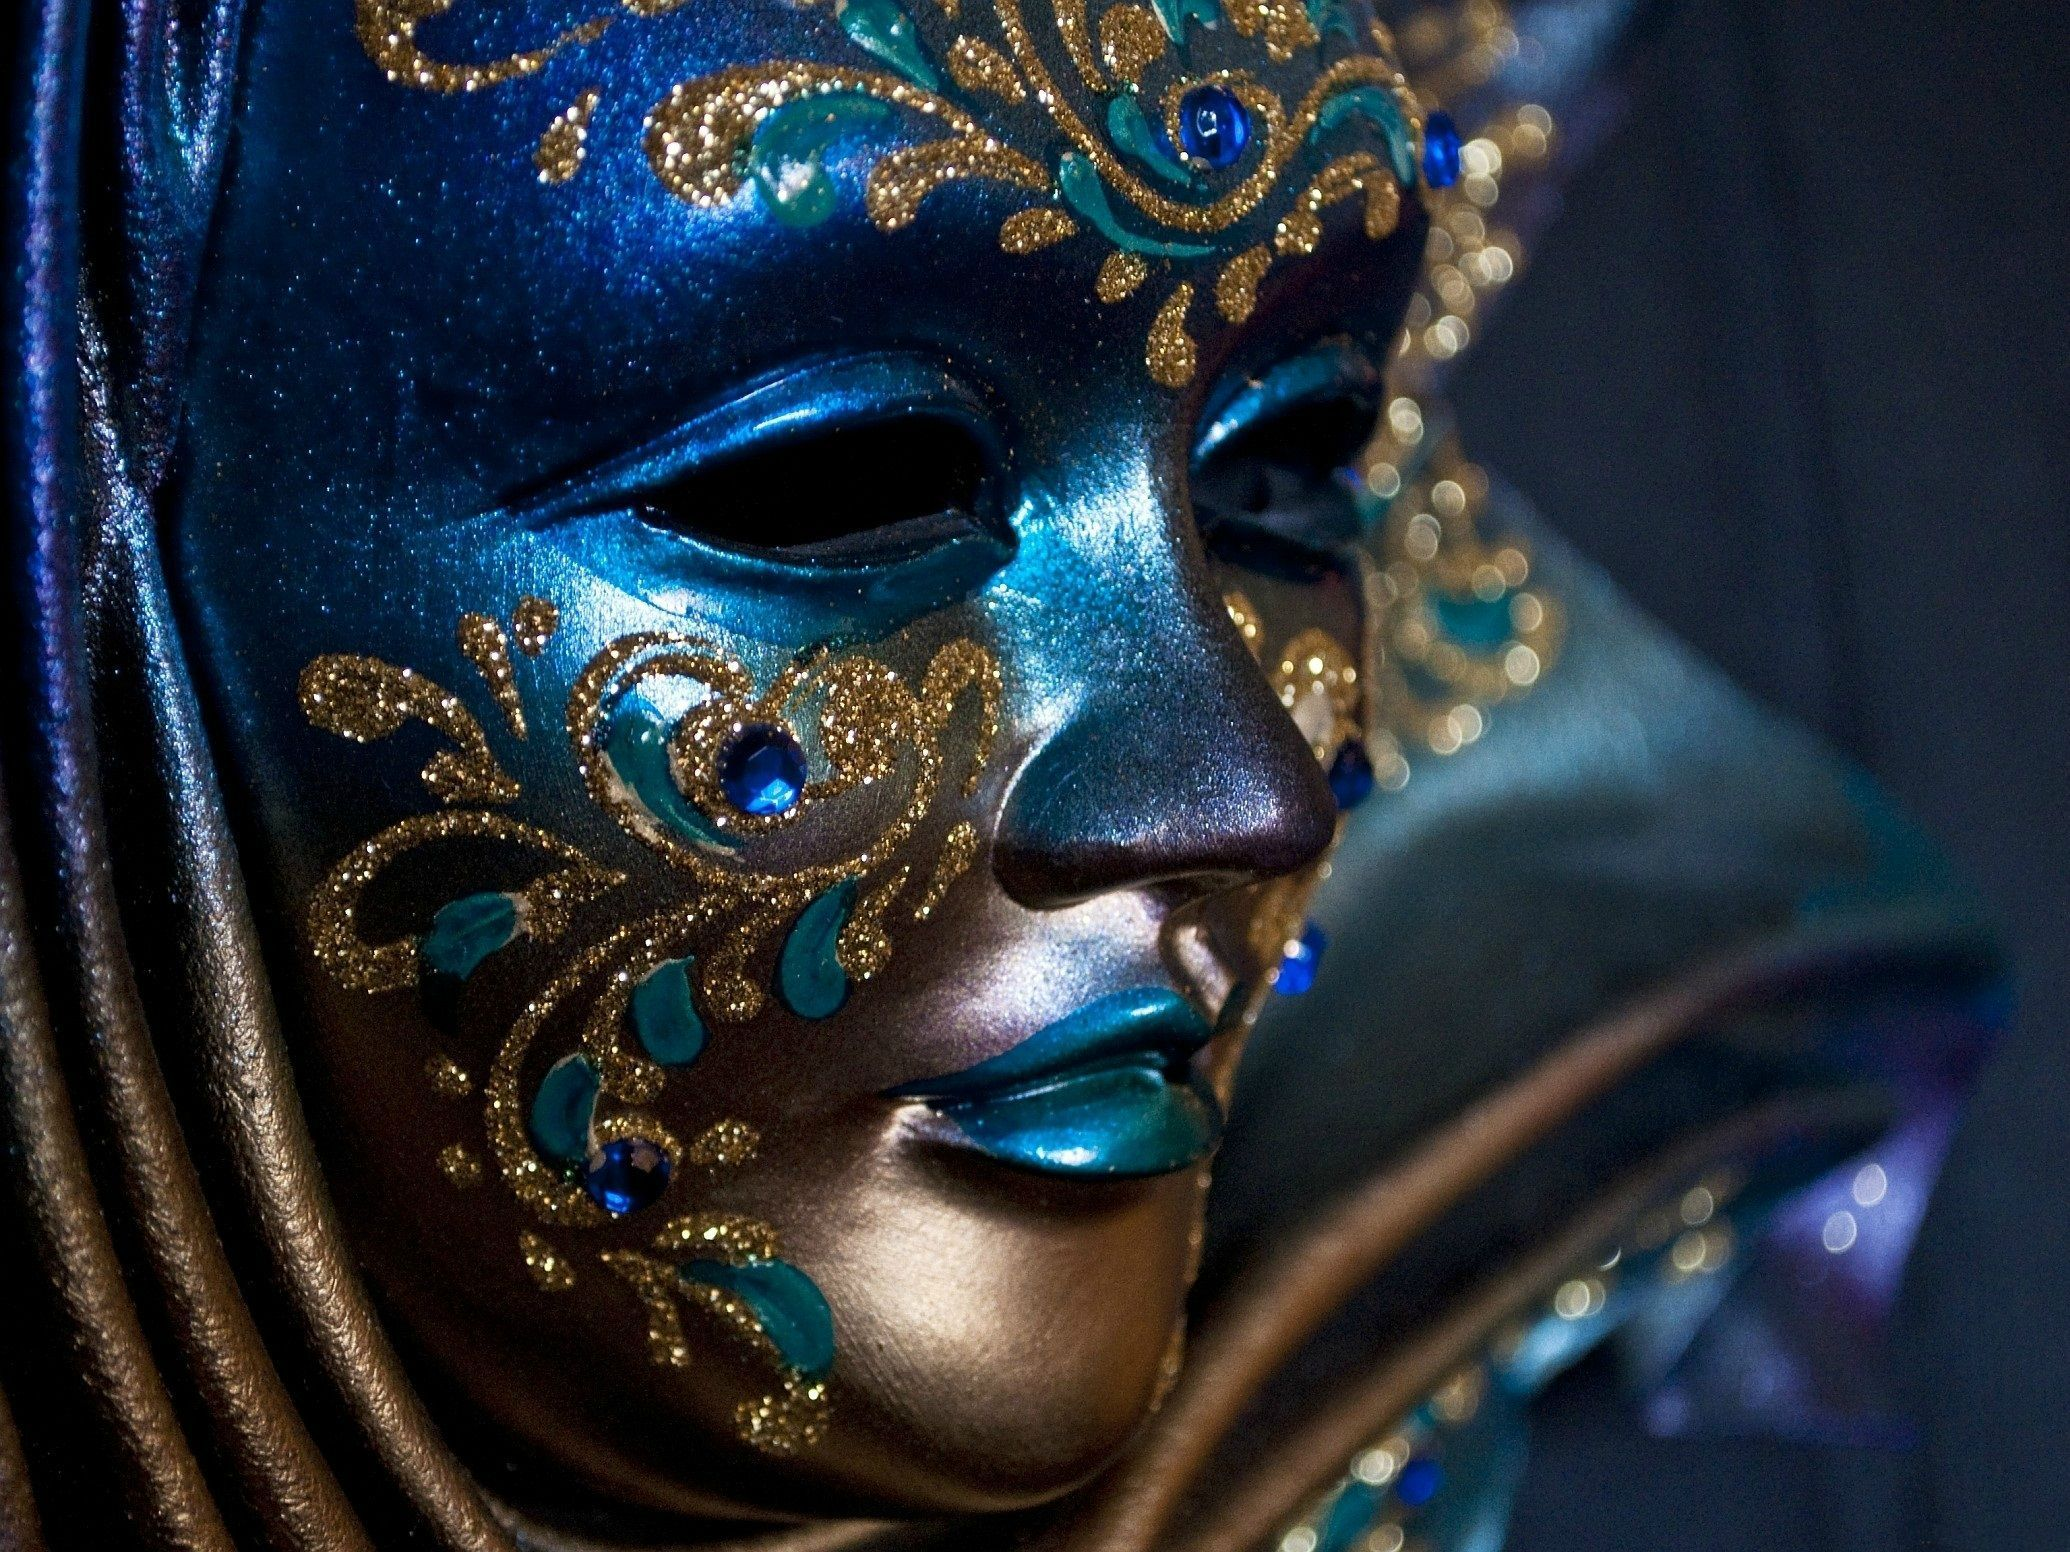 Carnival mask costume hd wallpapers download carnival - Carnival wallpaper ...